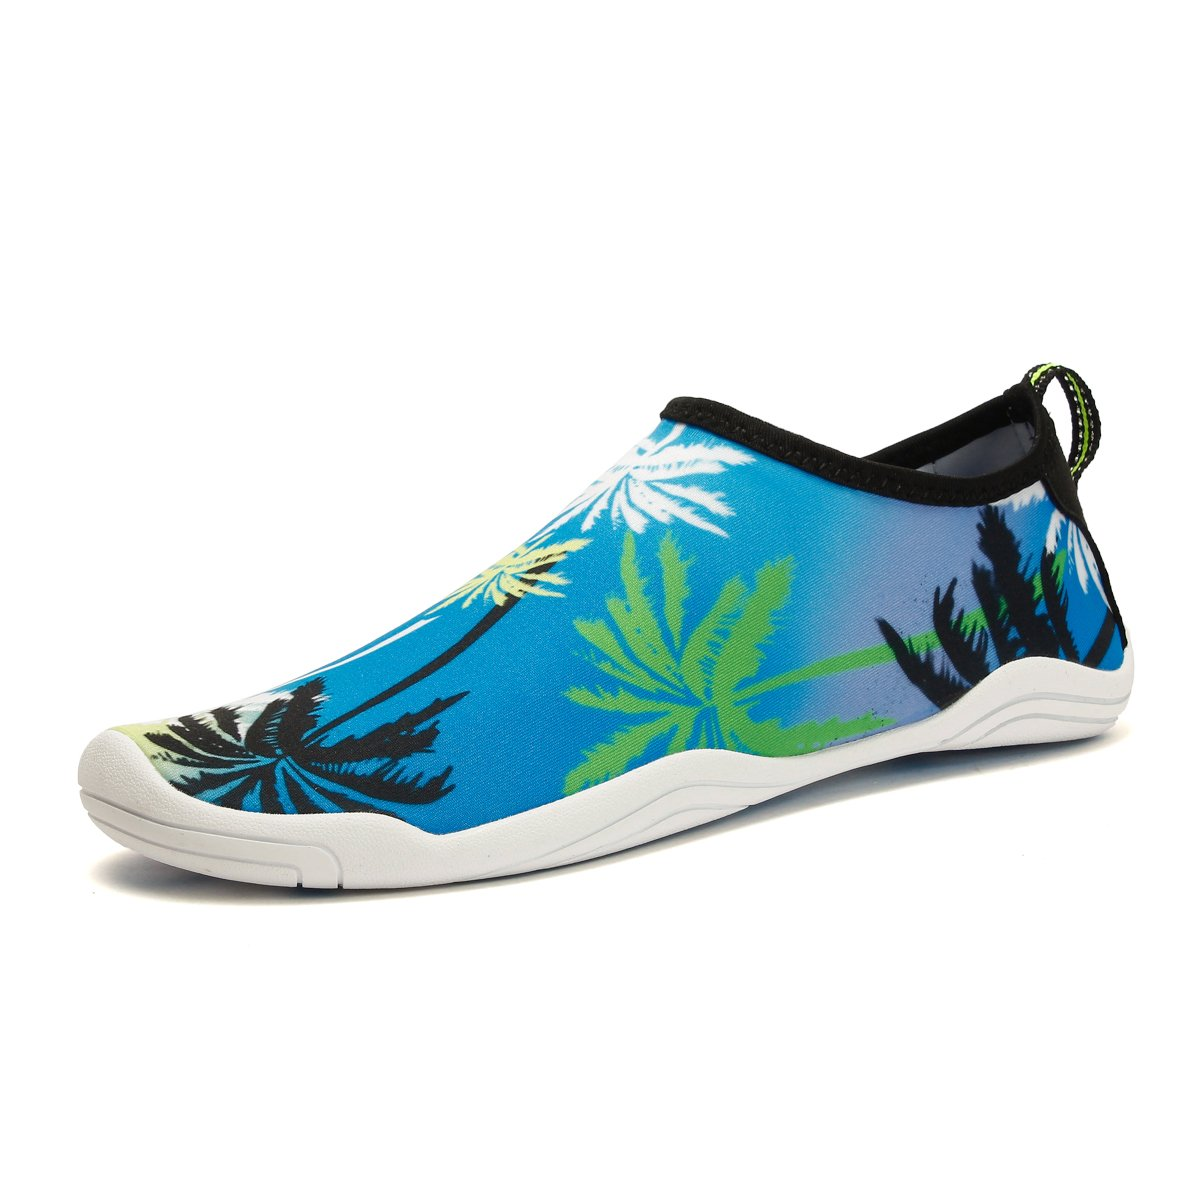 CJZHE Couple Swimming Wading Non-Slip Shoes Casual Fashion Stretch Lightweight Beach Shoes (10 B (M) US, Blue 1)